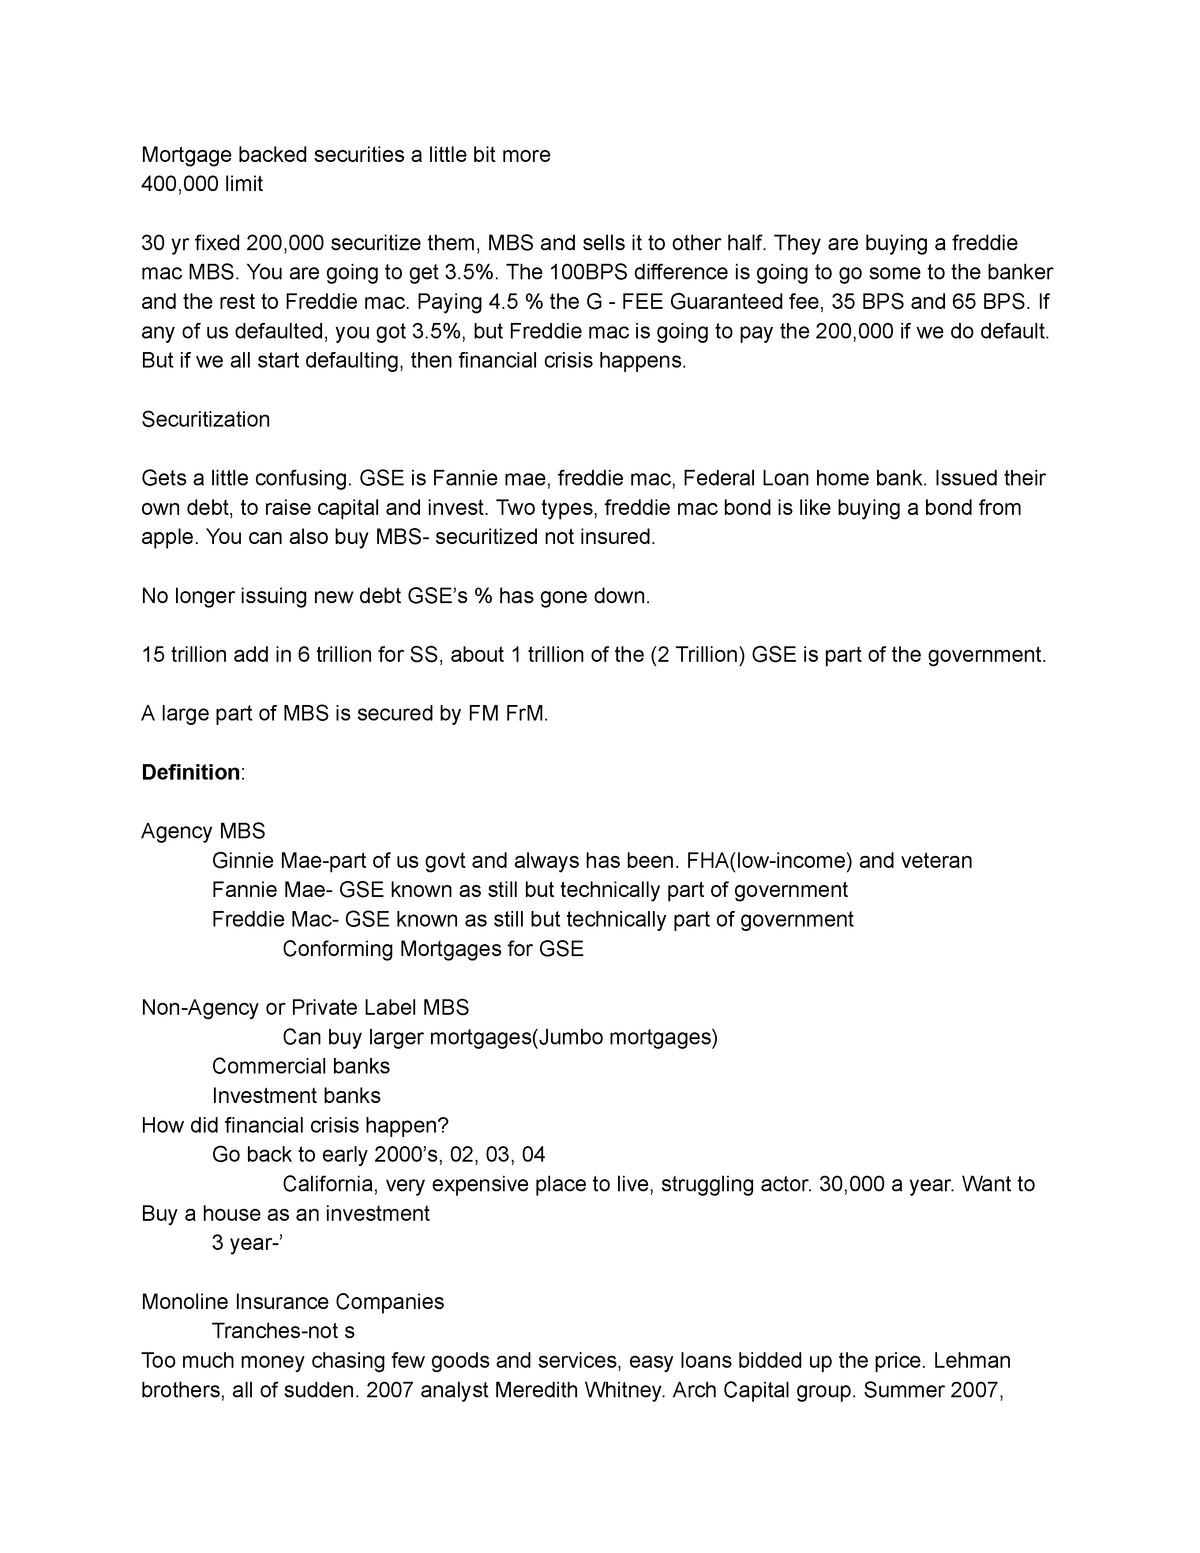 FIS 4 17 - Google Docs - FIN 327: Fixed Income Securities